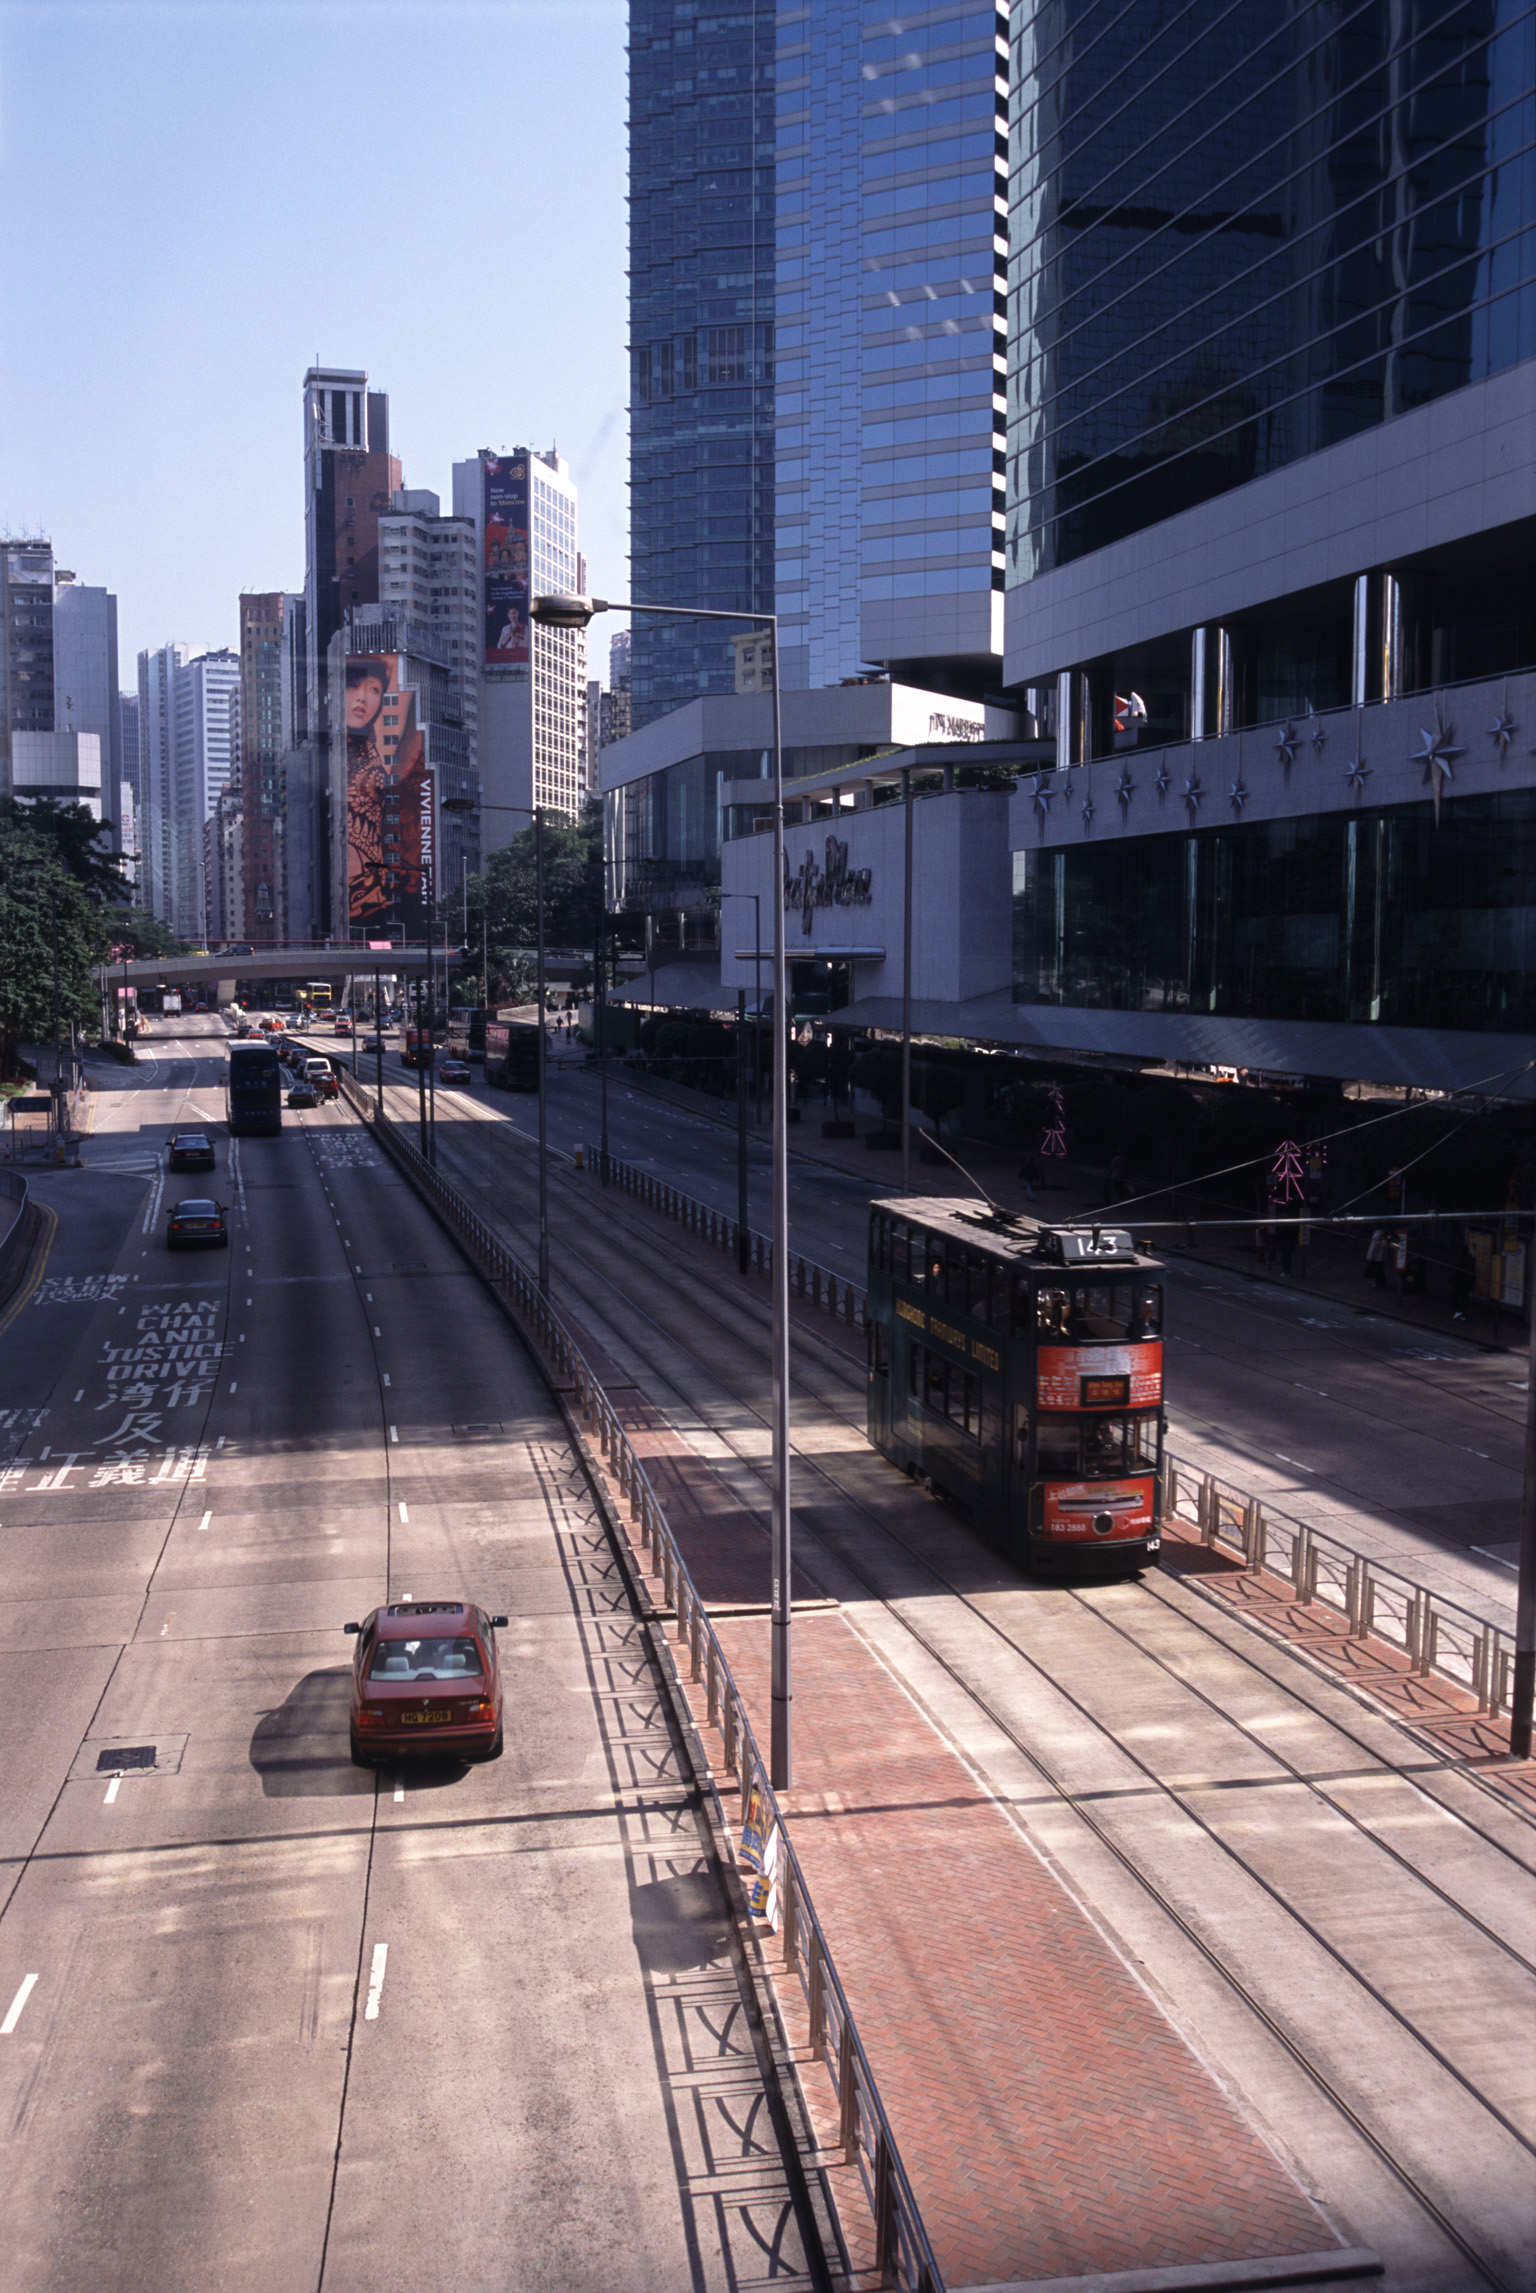 No Traffic City Streets For Cars and Trams in Hong Kong China with High Rise Architectural Buildings on the Sides.